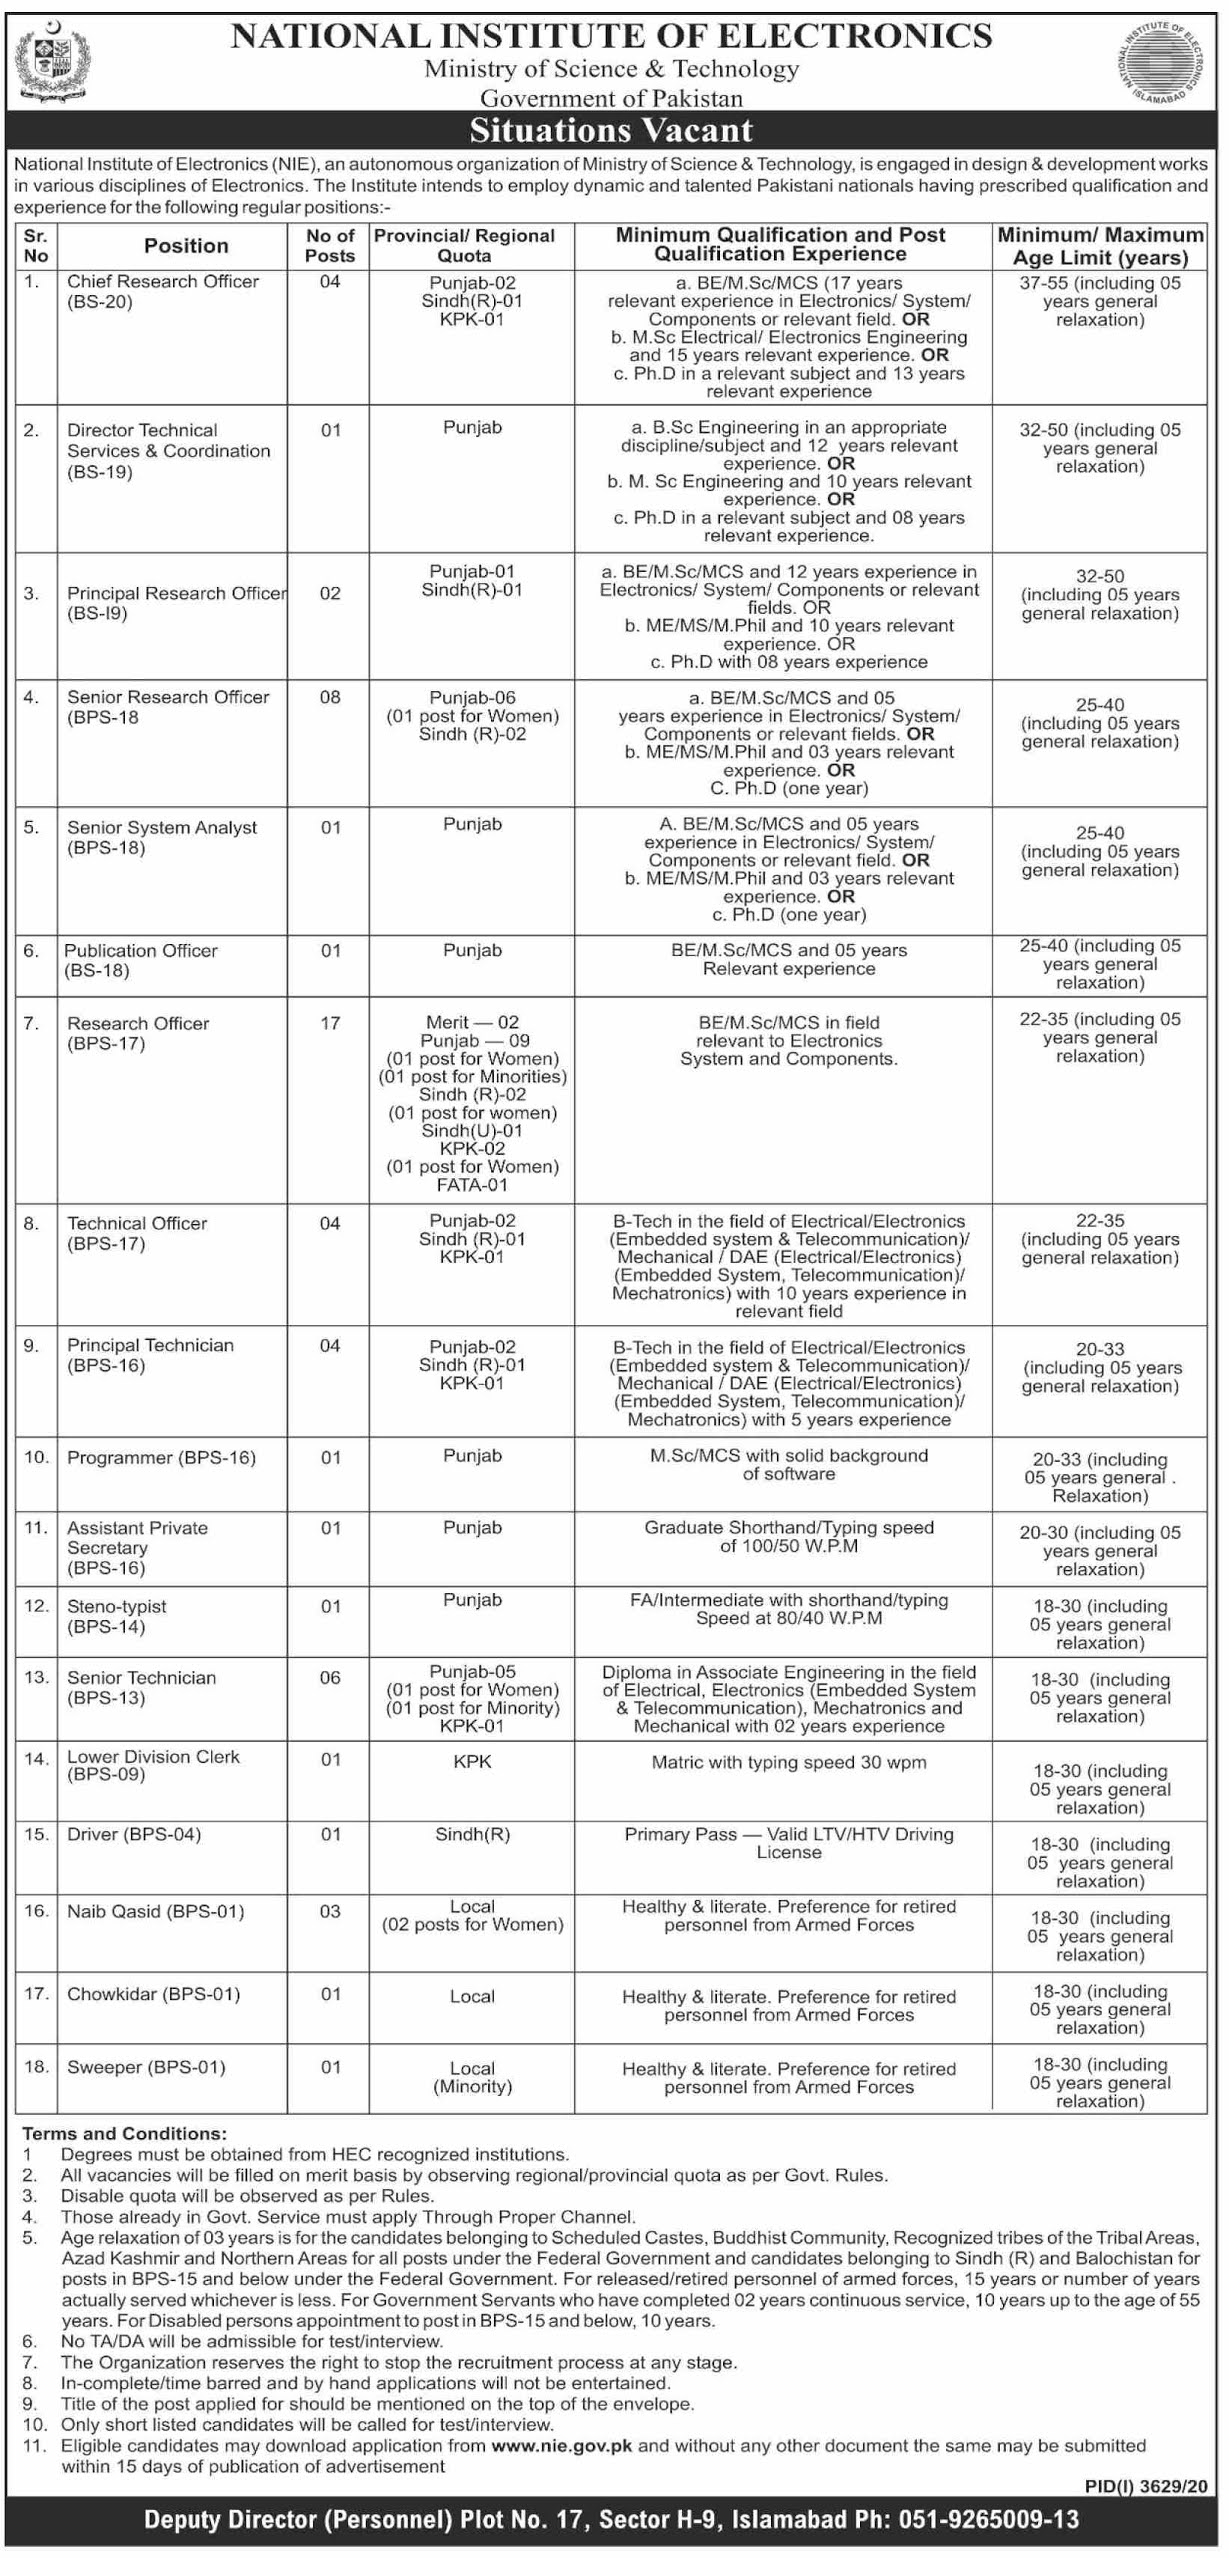 National Institute of Electronics NIE Jobs 2021 - Ministry of Science & Technology Jobs 2021 - Download NIE Jobs 2021 Application Form - www.nie.gov.pk